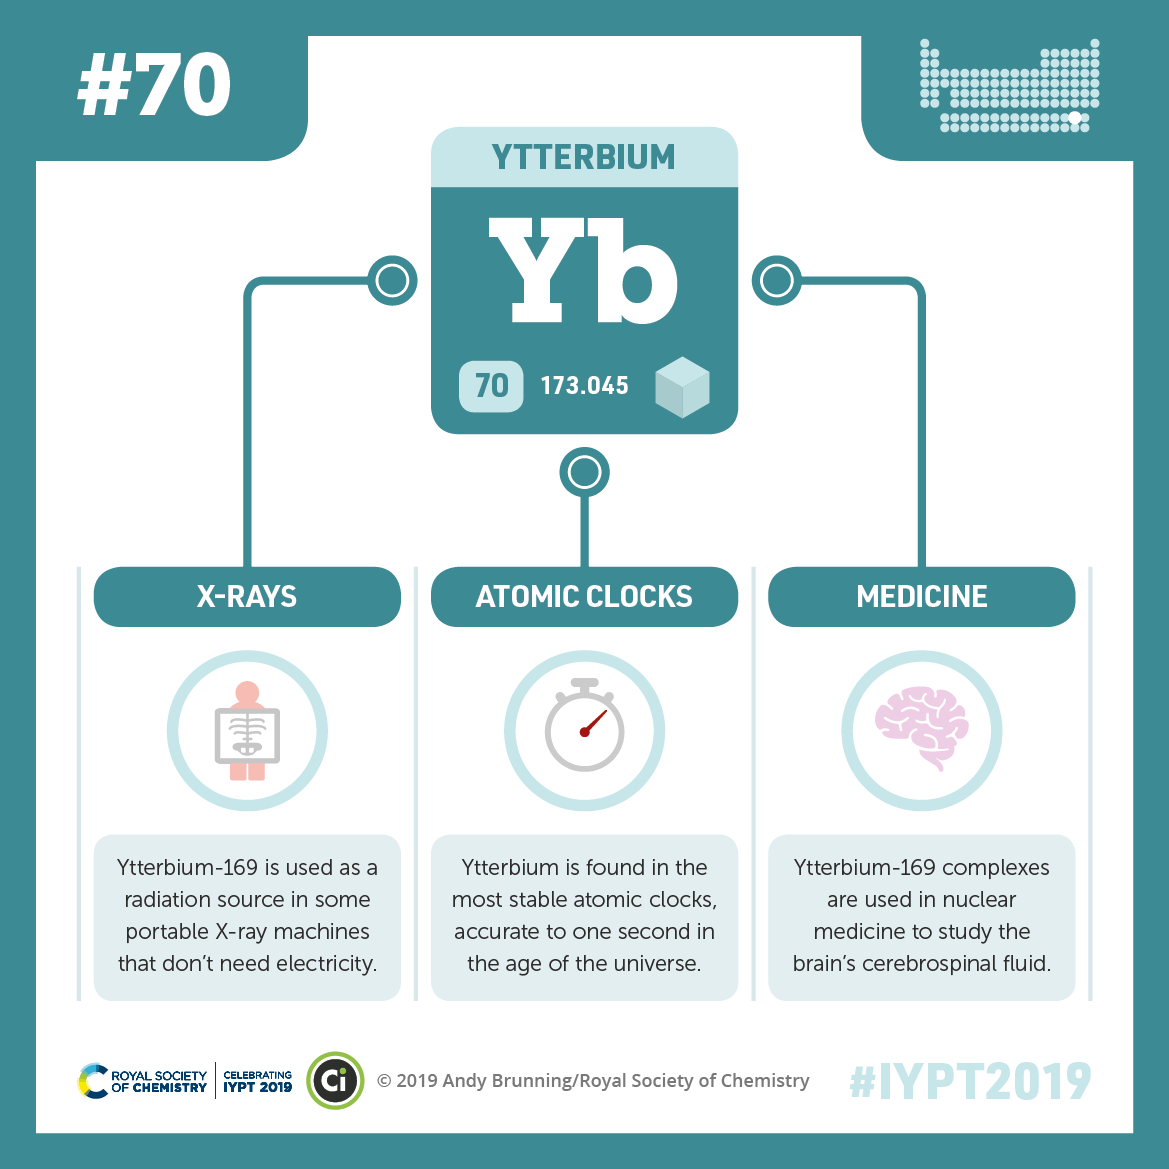 IYPT 2019 Elements 070: Ytterbium: Accurate atomic clocks and brain studies